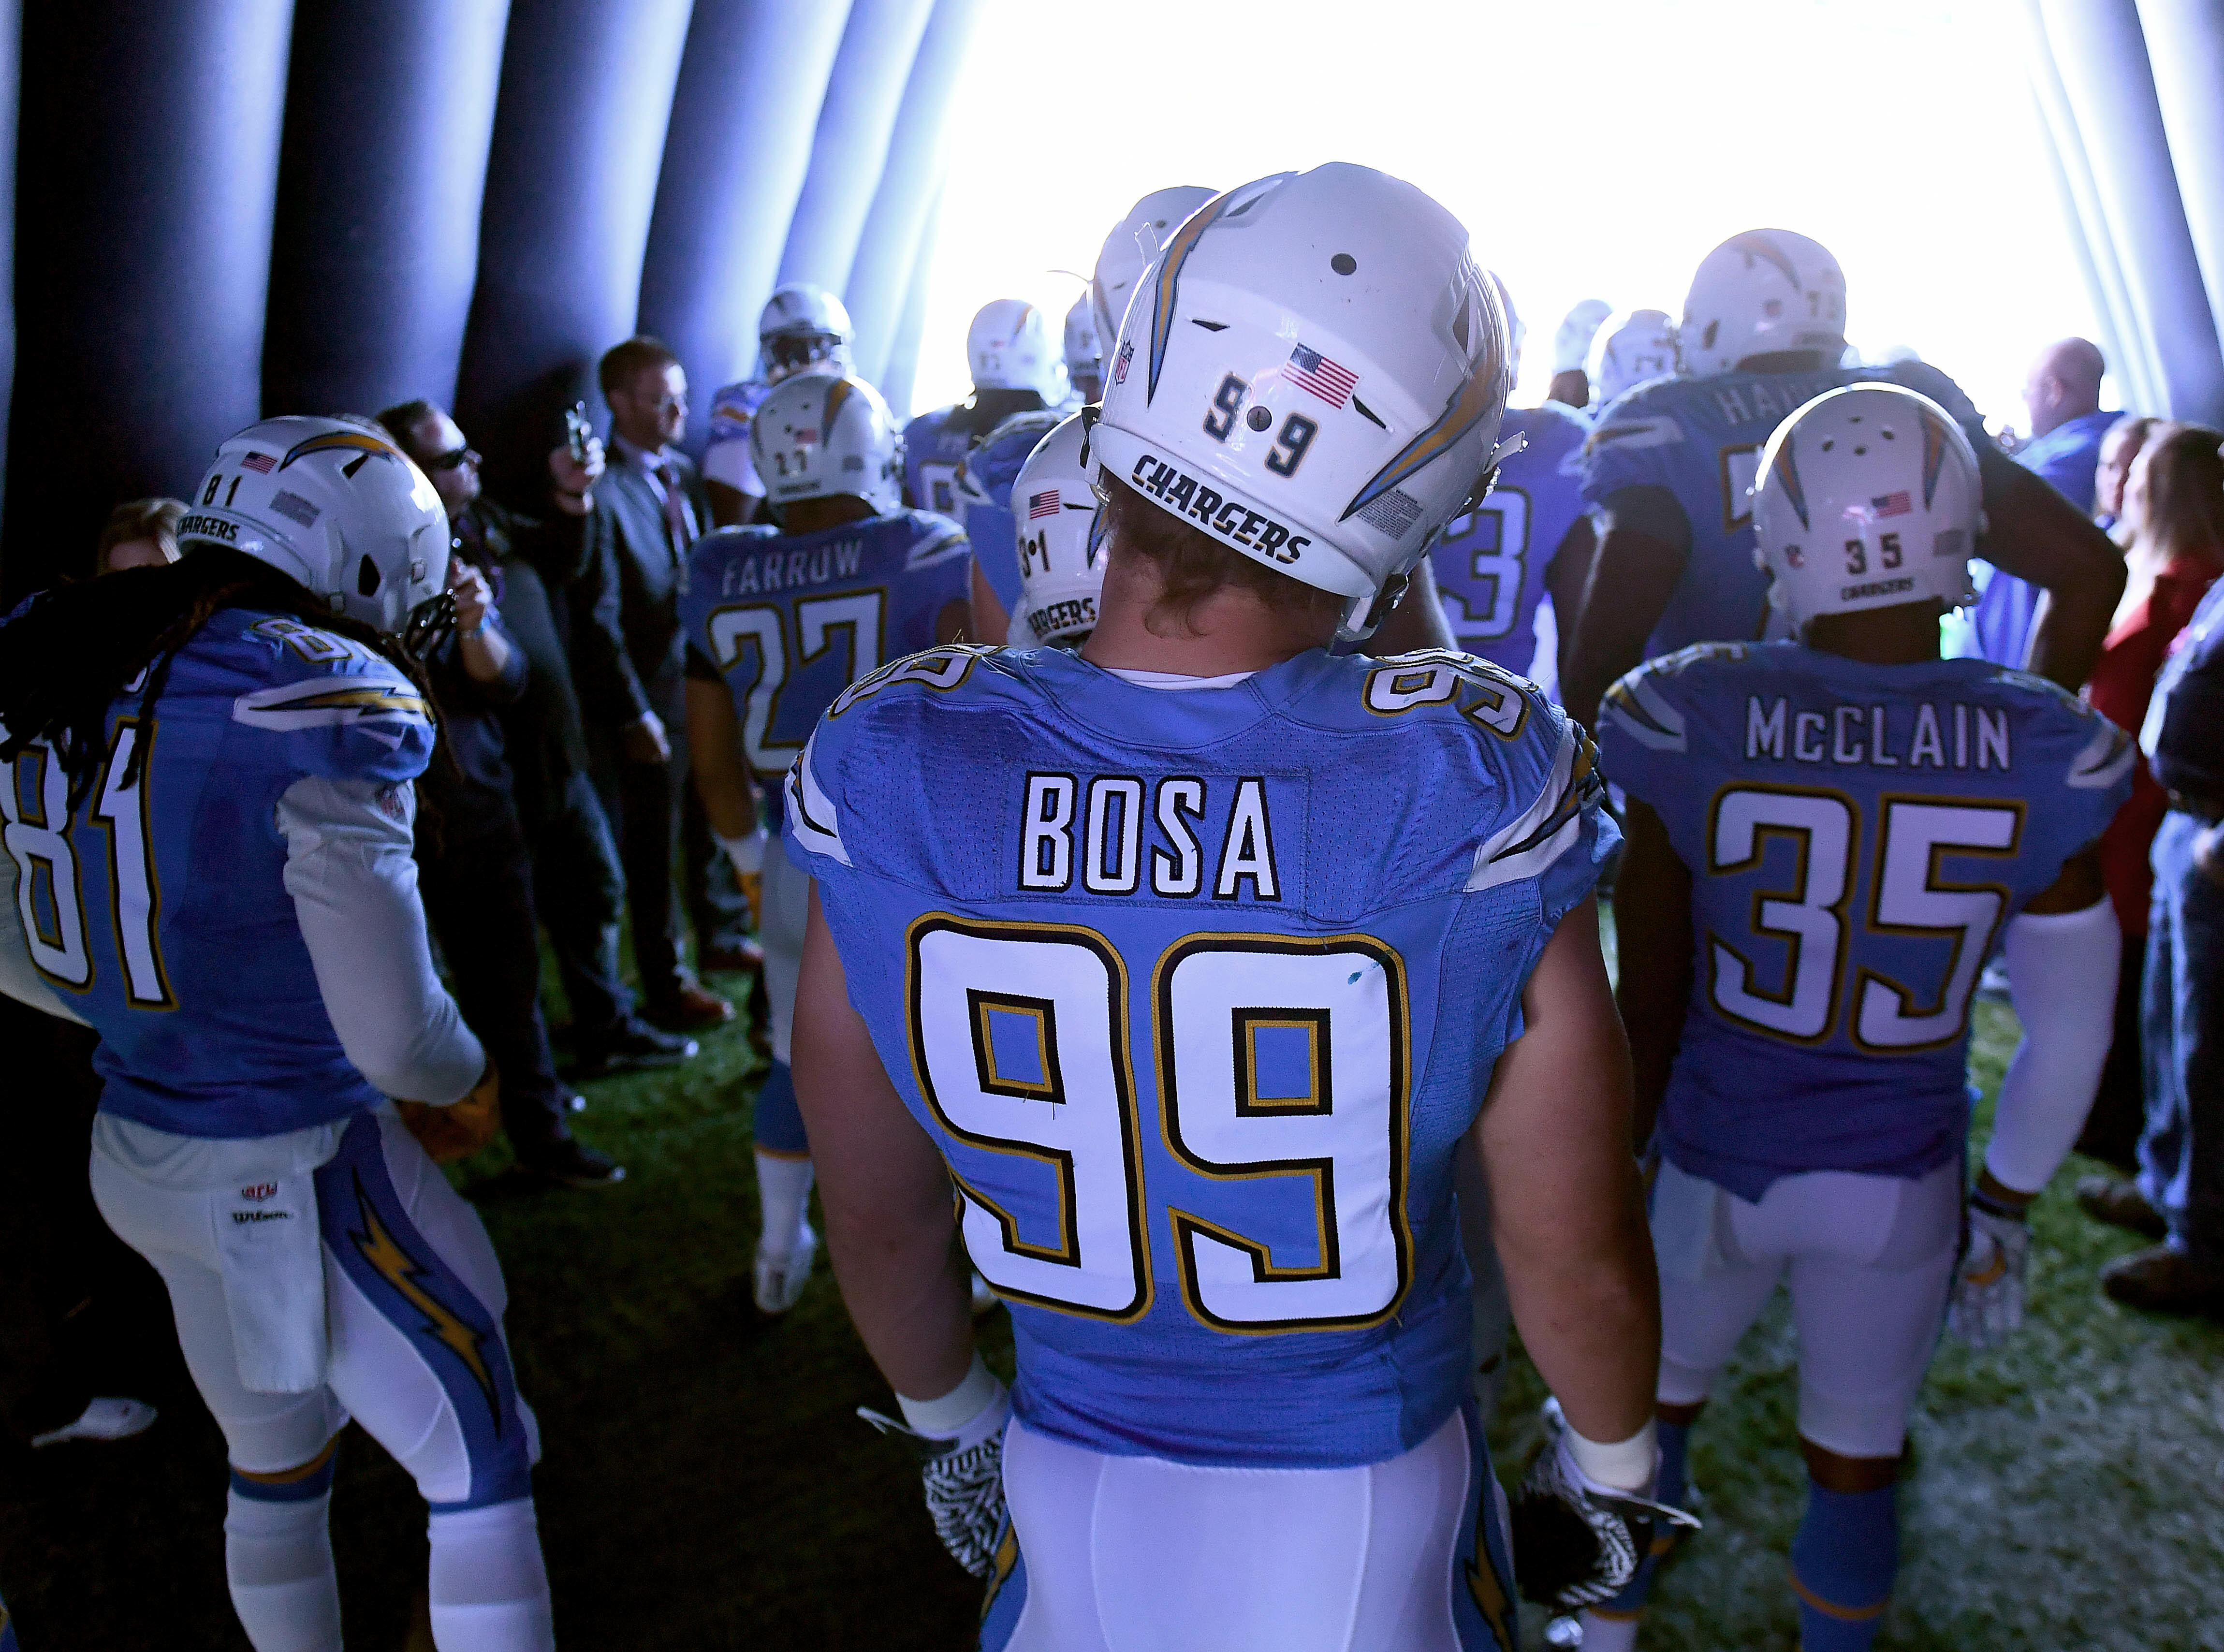 SAN DIEGO, CA - DECEMBER 18: Joey Bosa #99 of the San Diego Chargers prepares to enter the field against the Oakland Raiders at Qualcomm Stadium on December 18, 2016 in San Diego, California. (Photo by Donald Miralle/Getty Images)